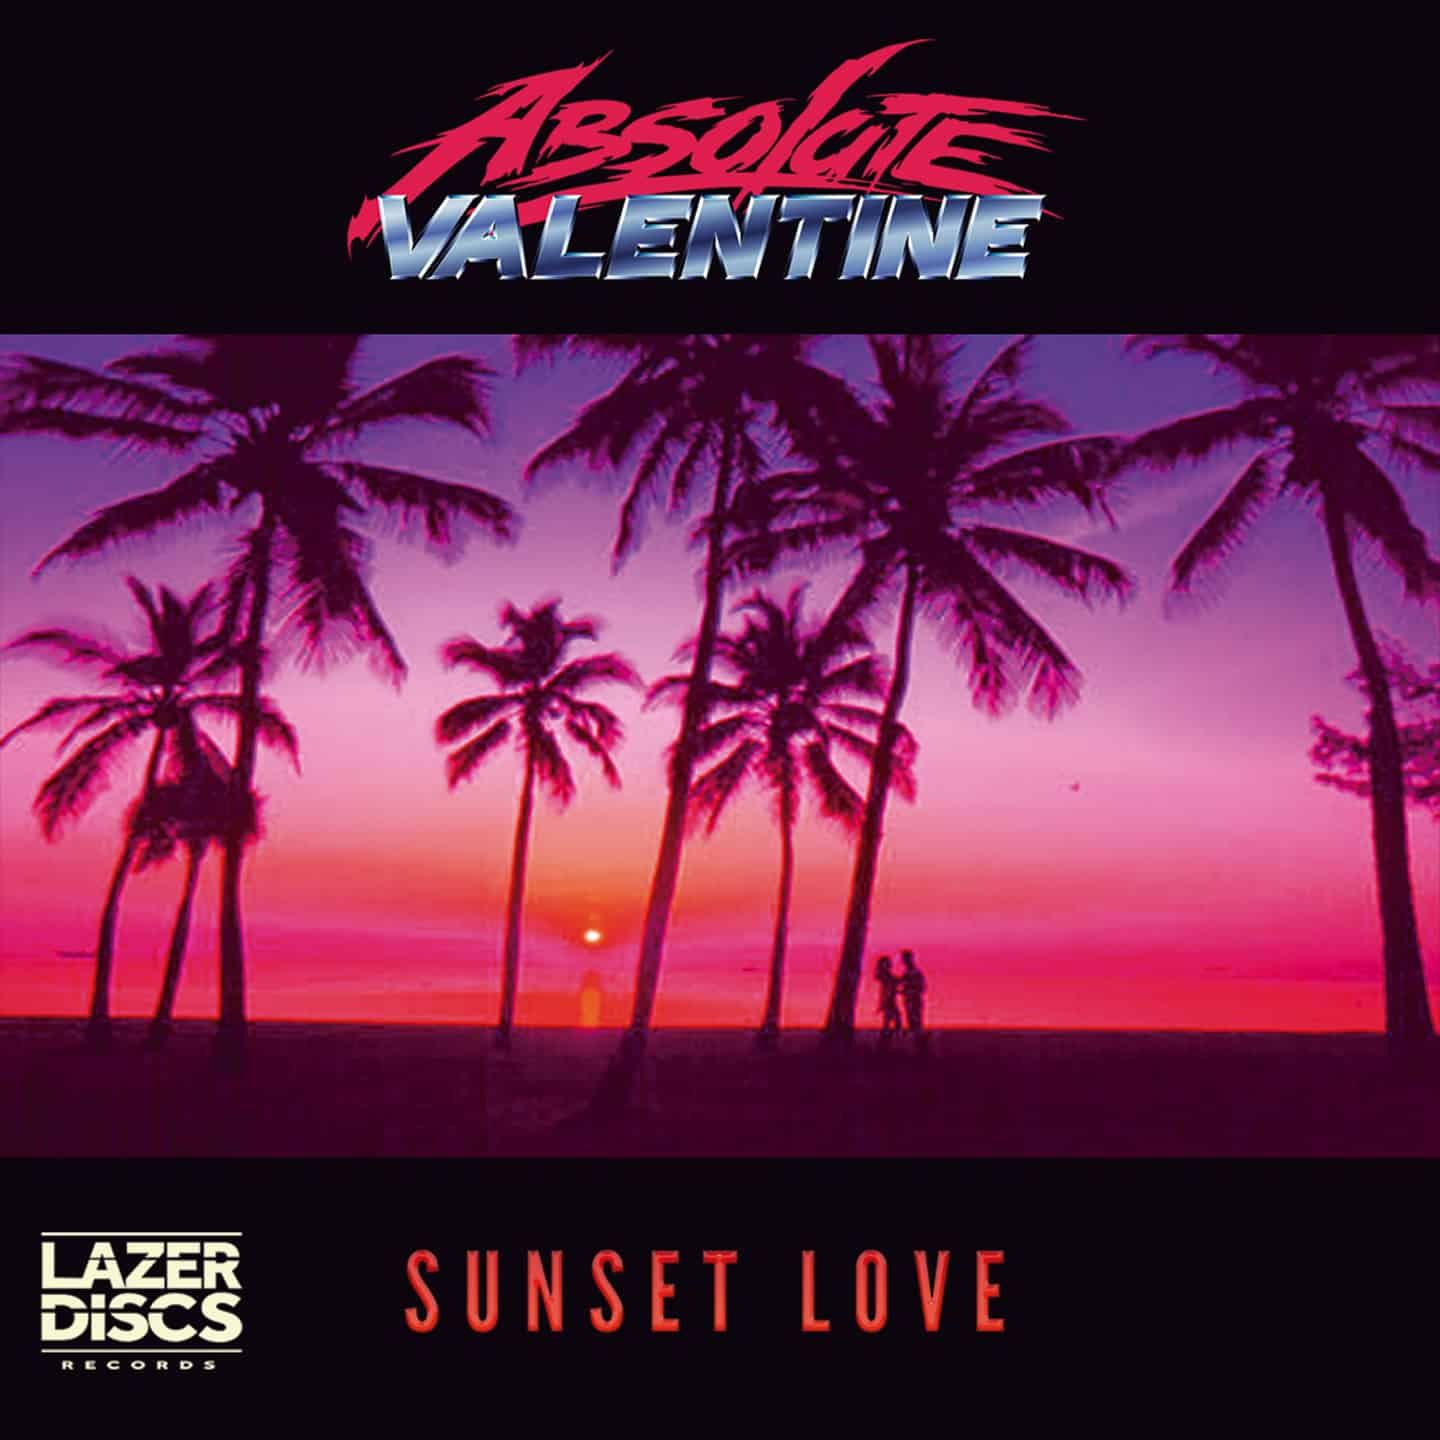 synthwave artists absoltue valentine